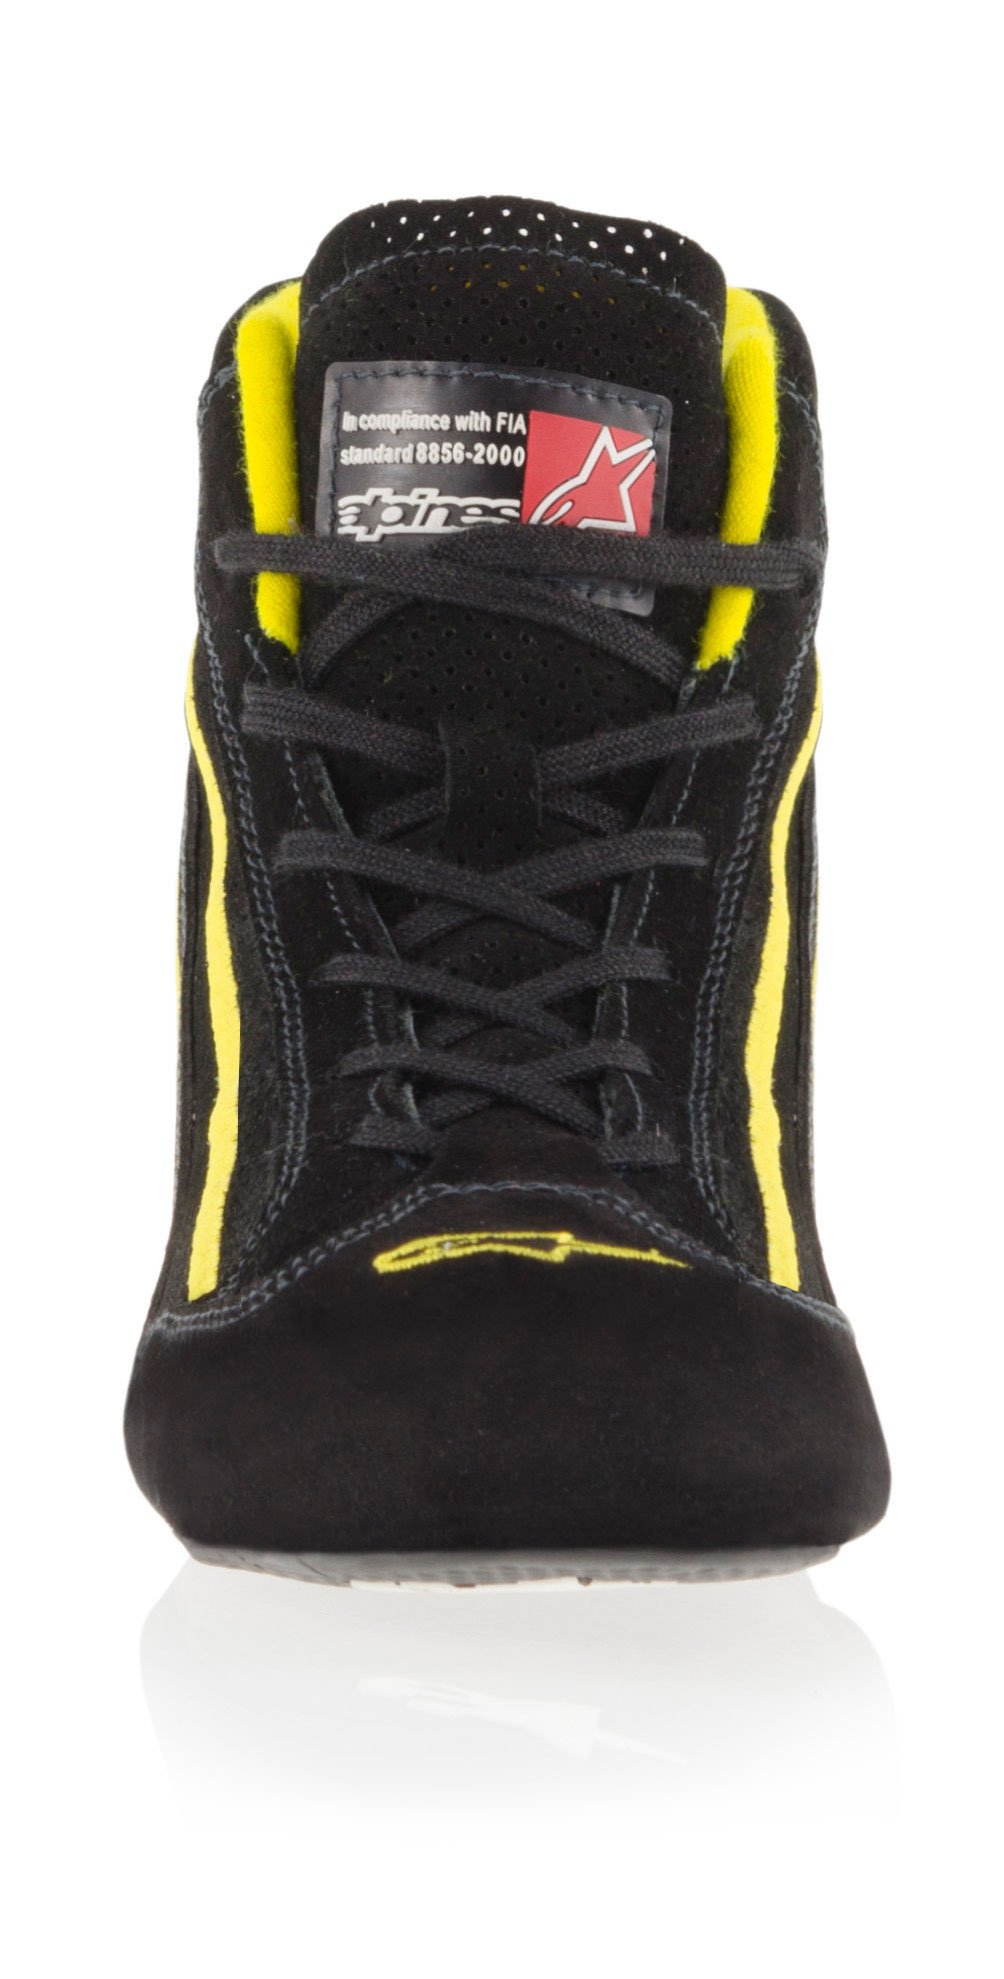 SP_SHOE_black_yellowfluo_rot1